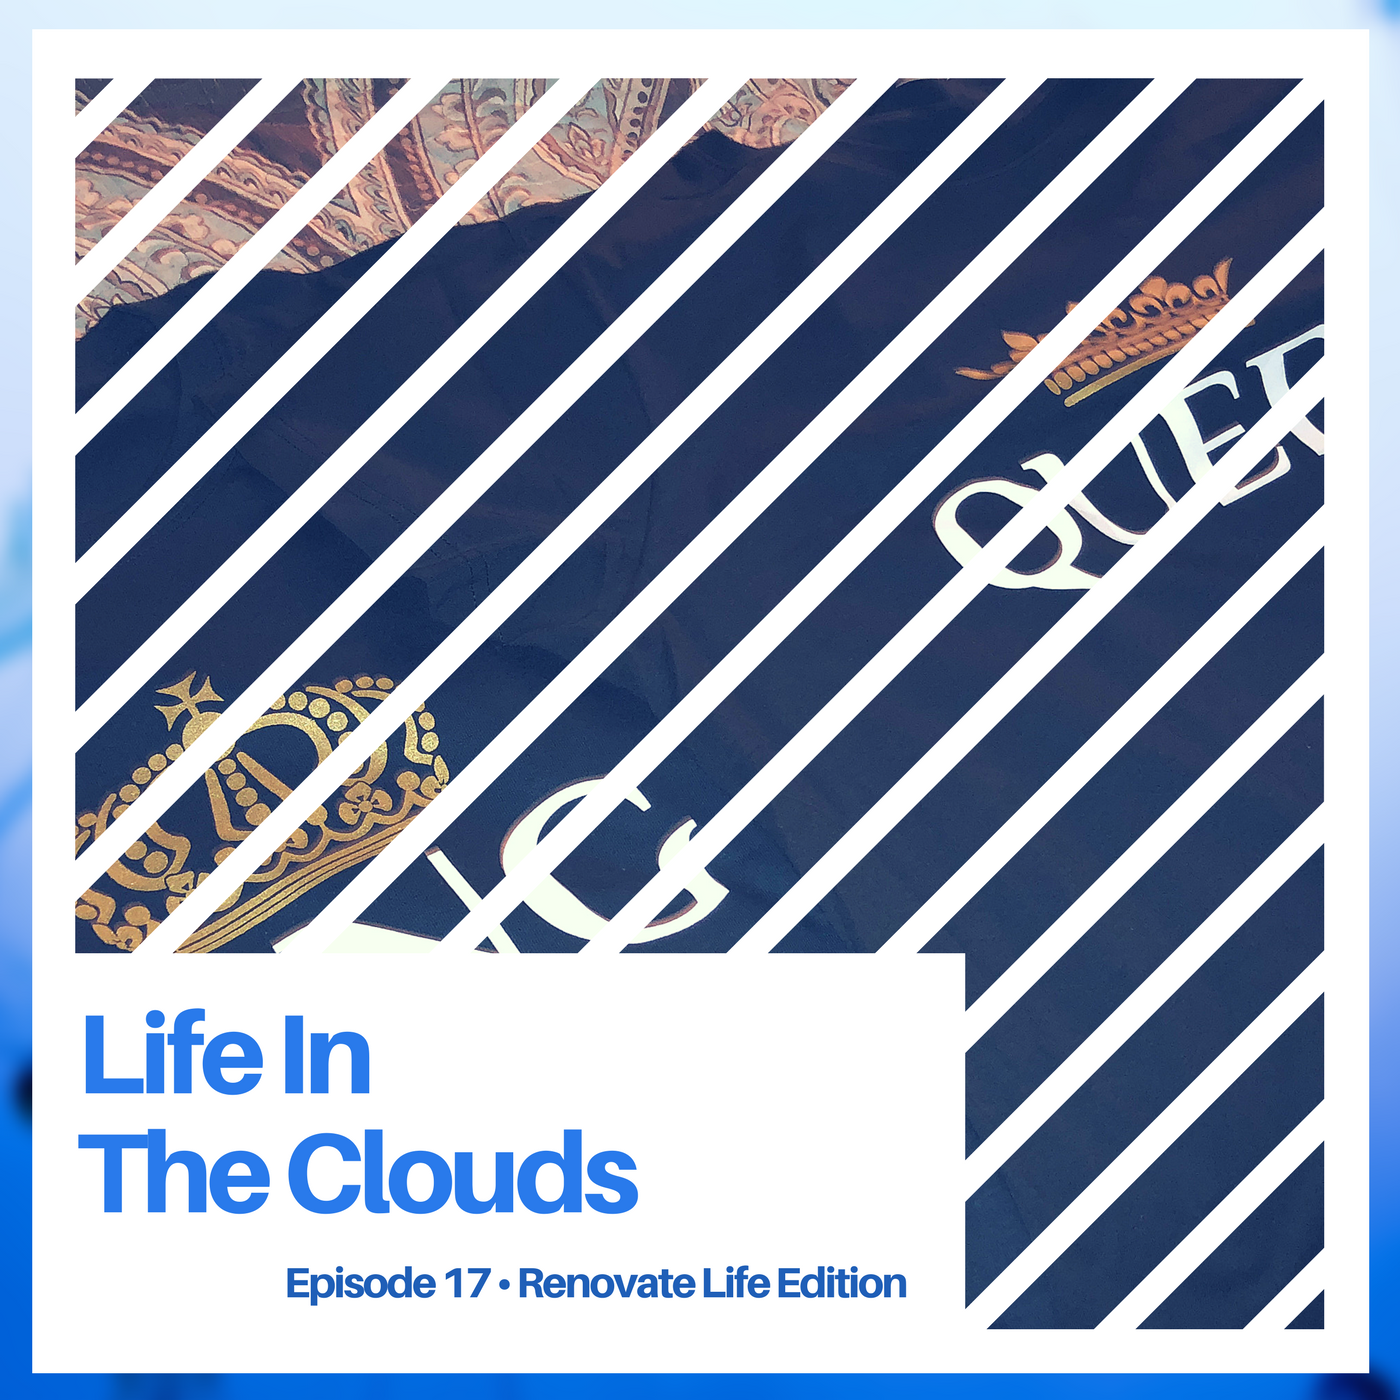 Life in the Clouds Episode 17 Cover image